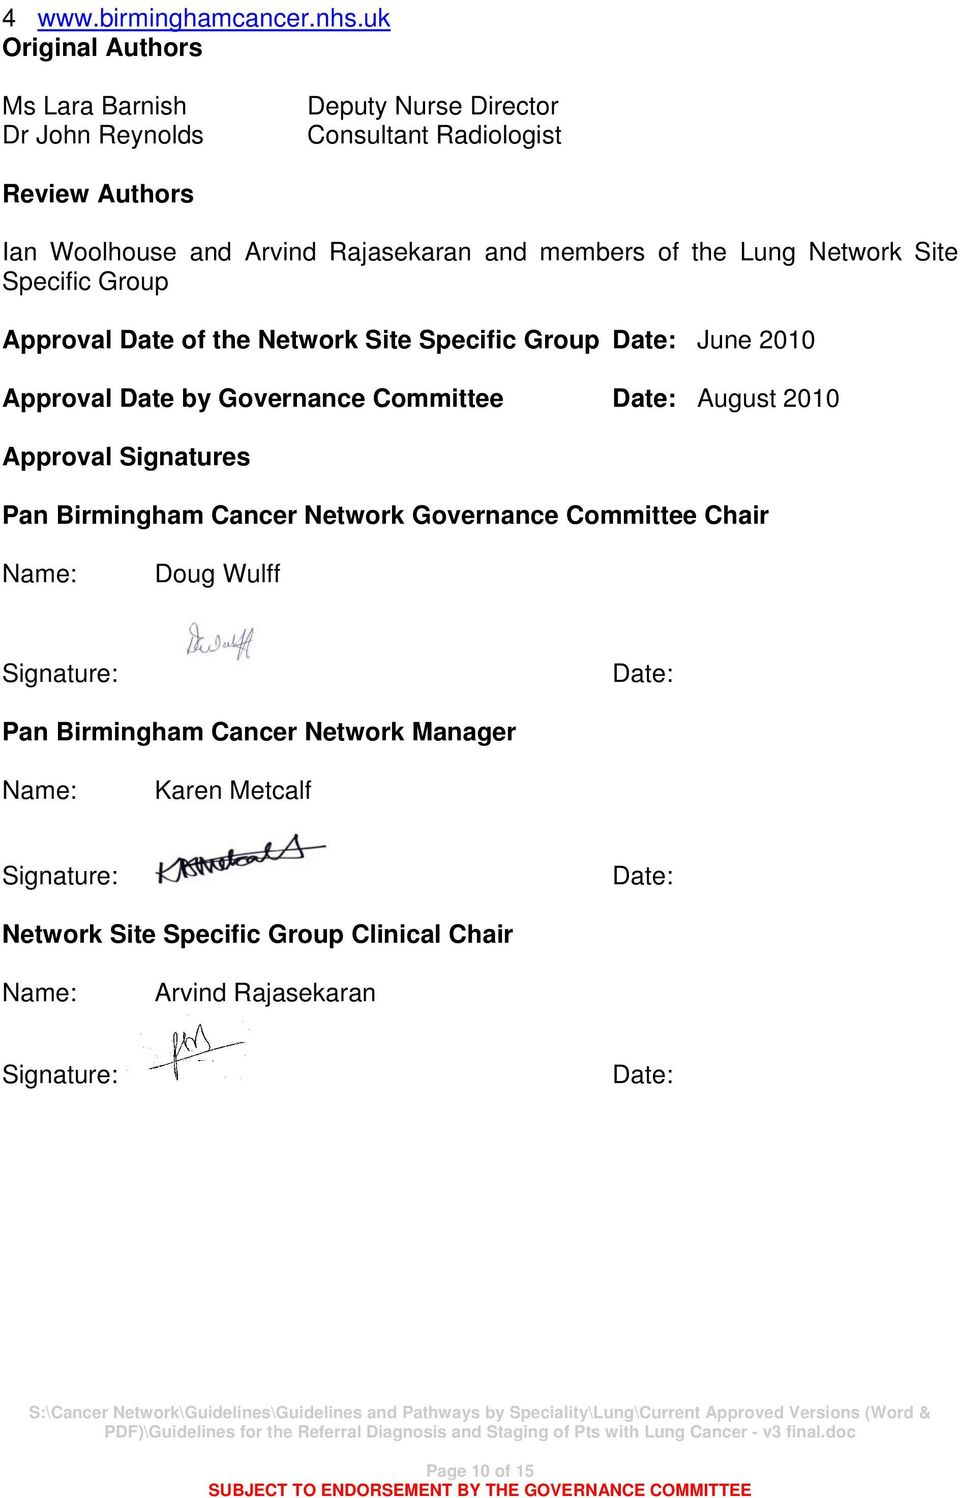 members of the Lung Network Site Specific Group Approval Date of the Network Site Specific Group Date: June 2010 Approval Date by Governance Committee Date: